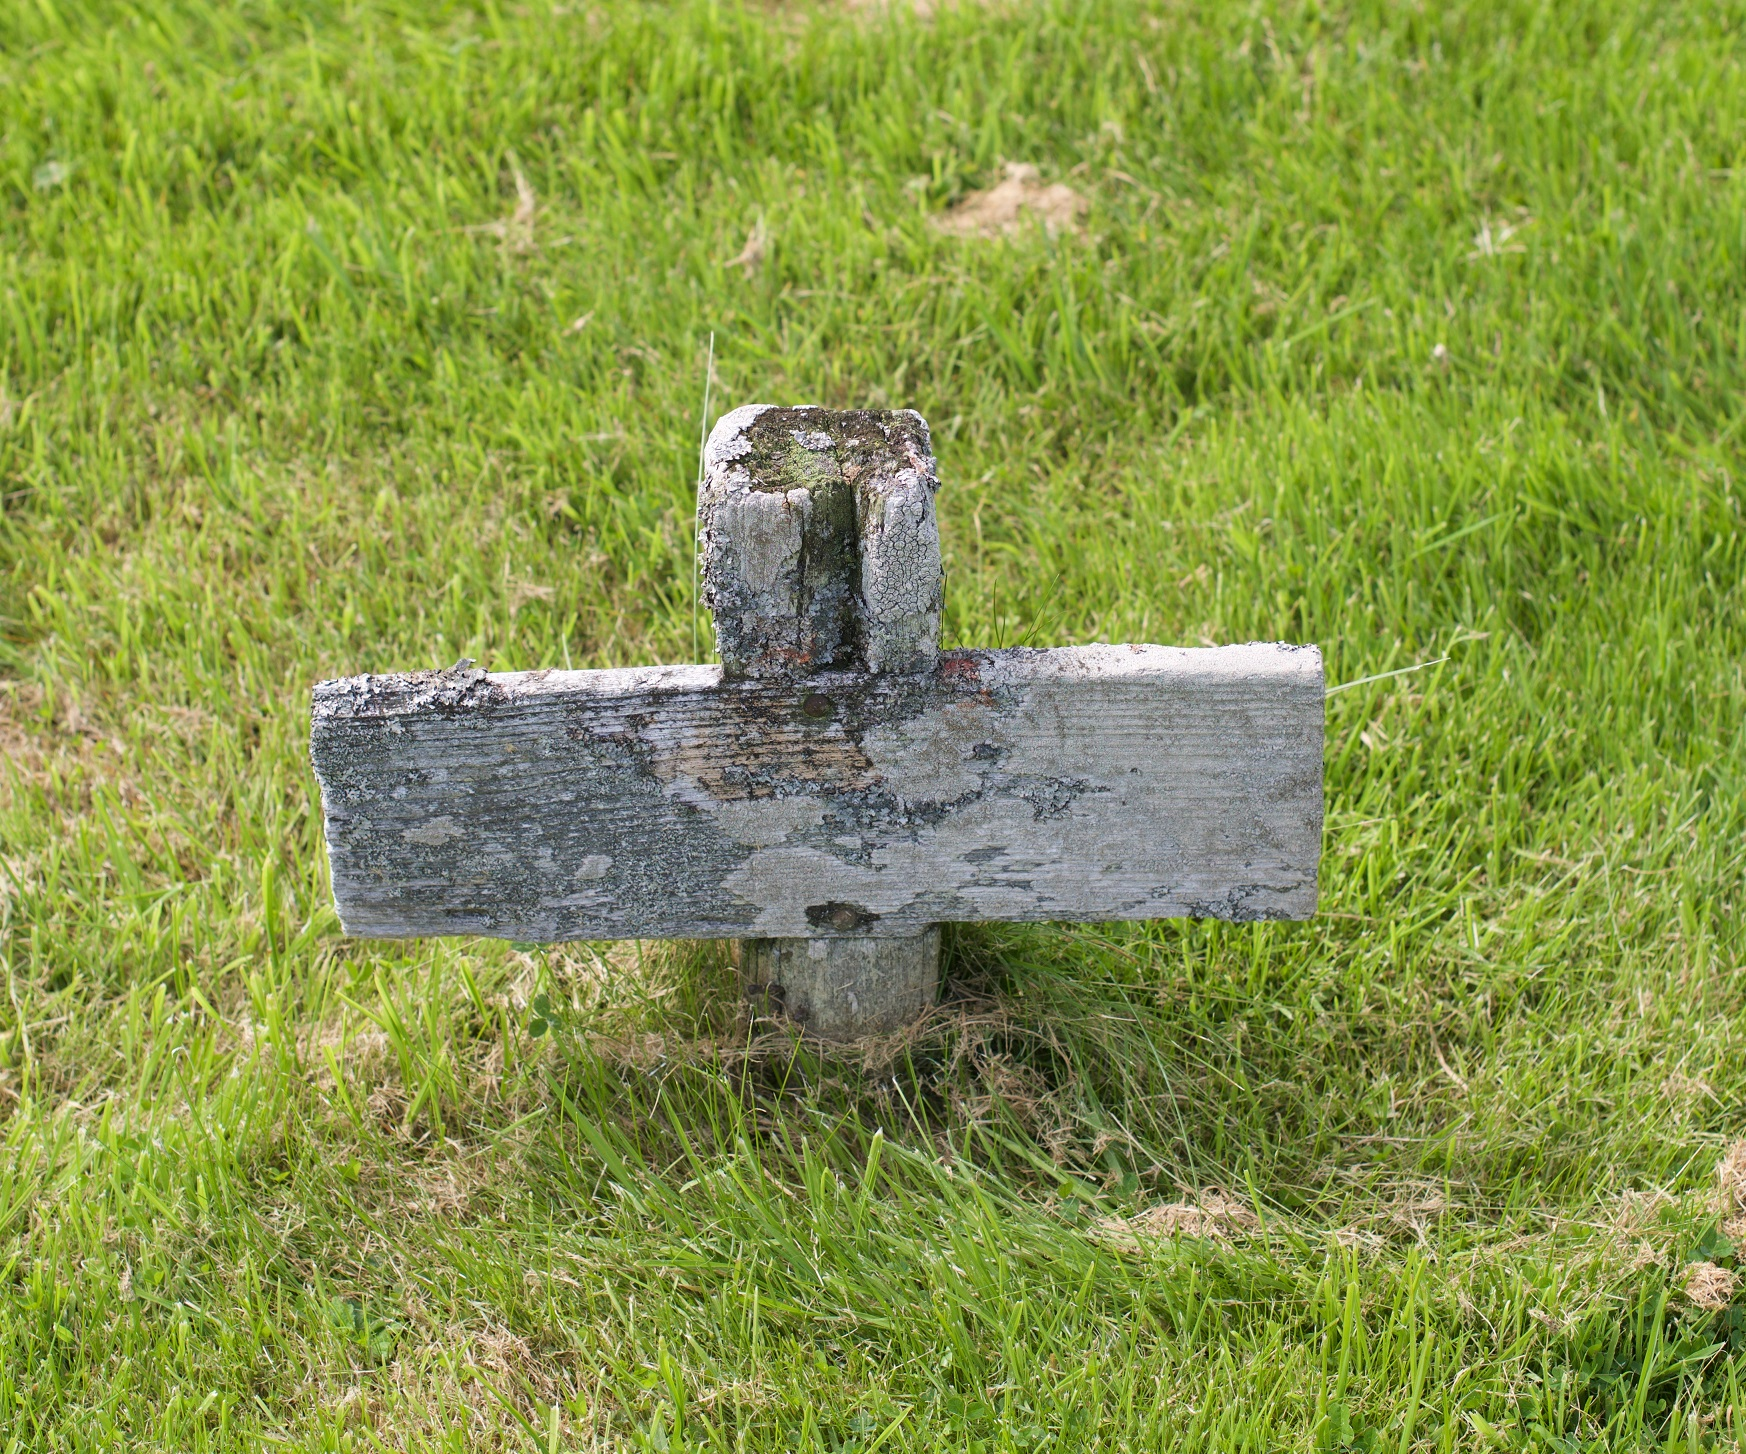 a wooden cross on grassy ground